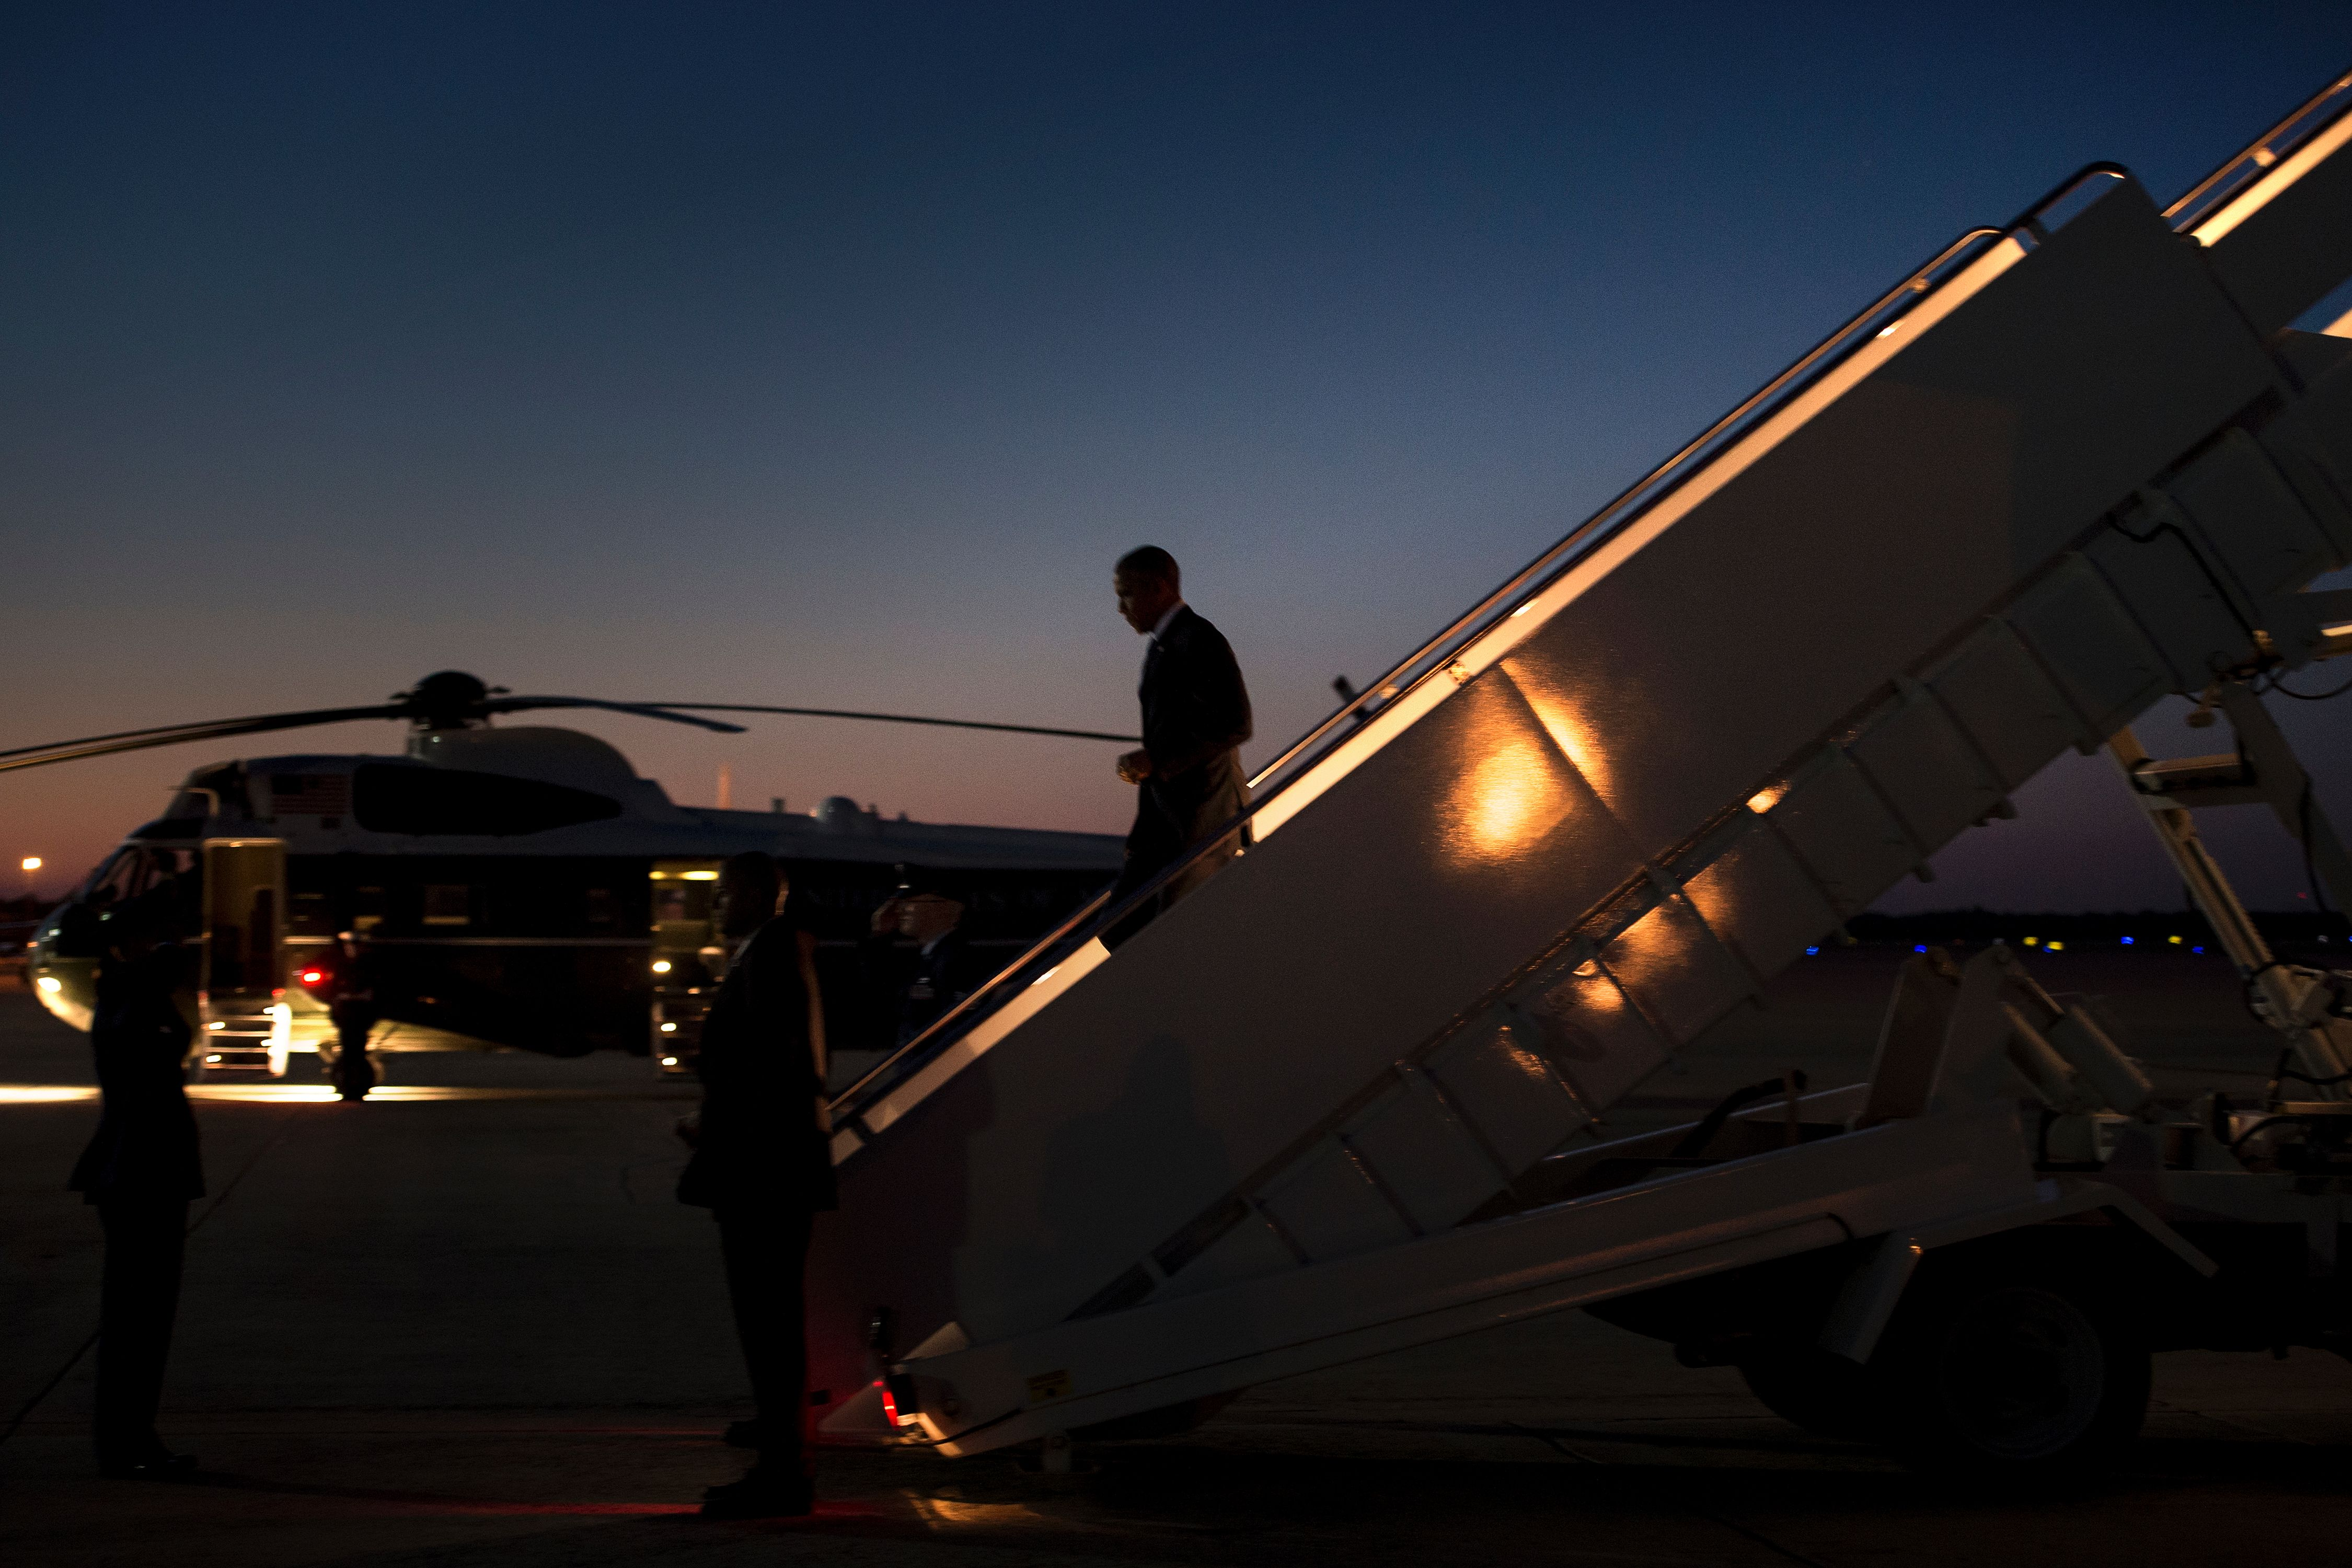 President Barack Obama steps off Air Force One at Andrews Air Force Base June 29, 2016 in Maryland. (Getty)